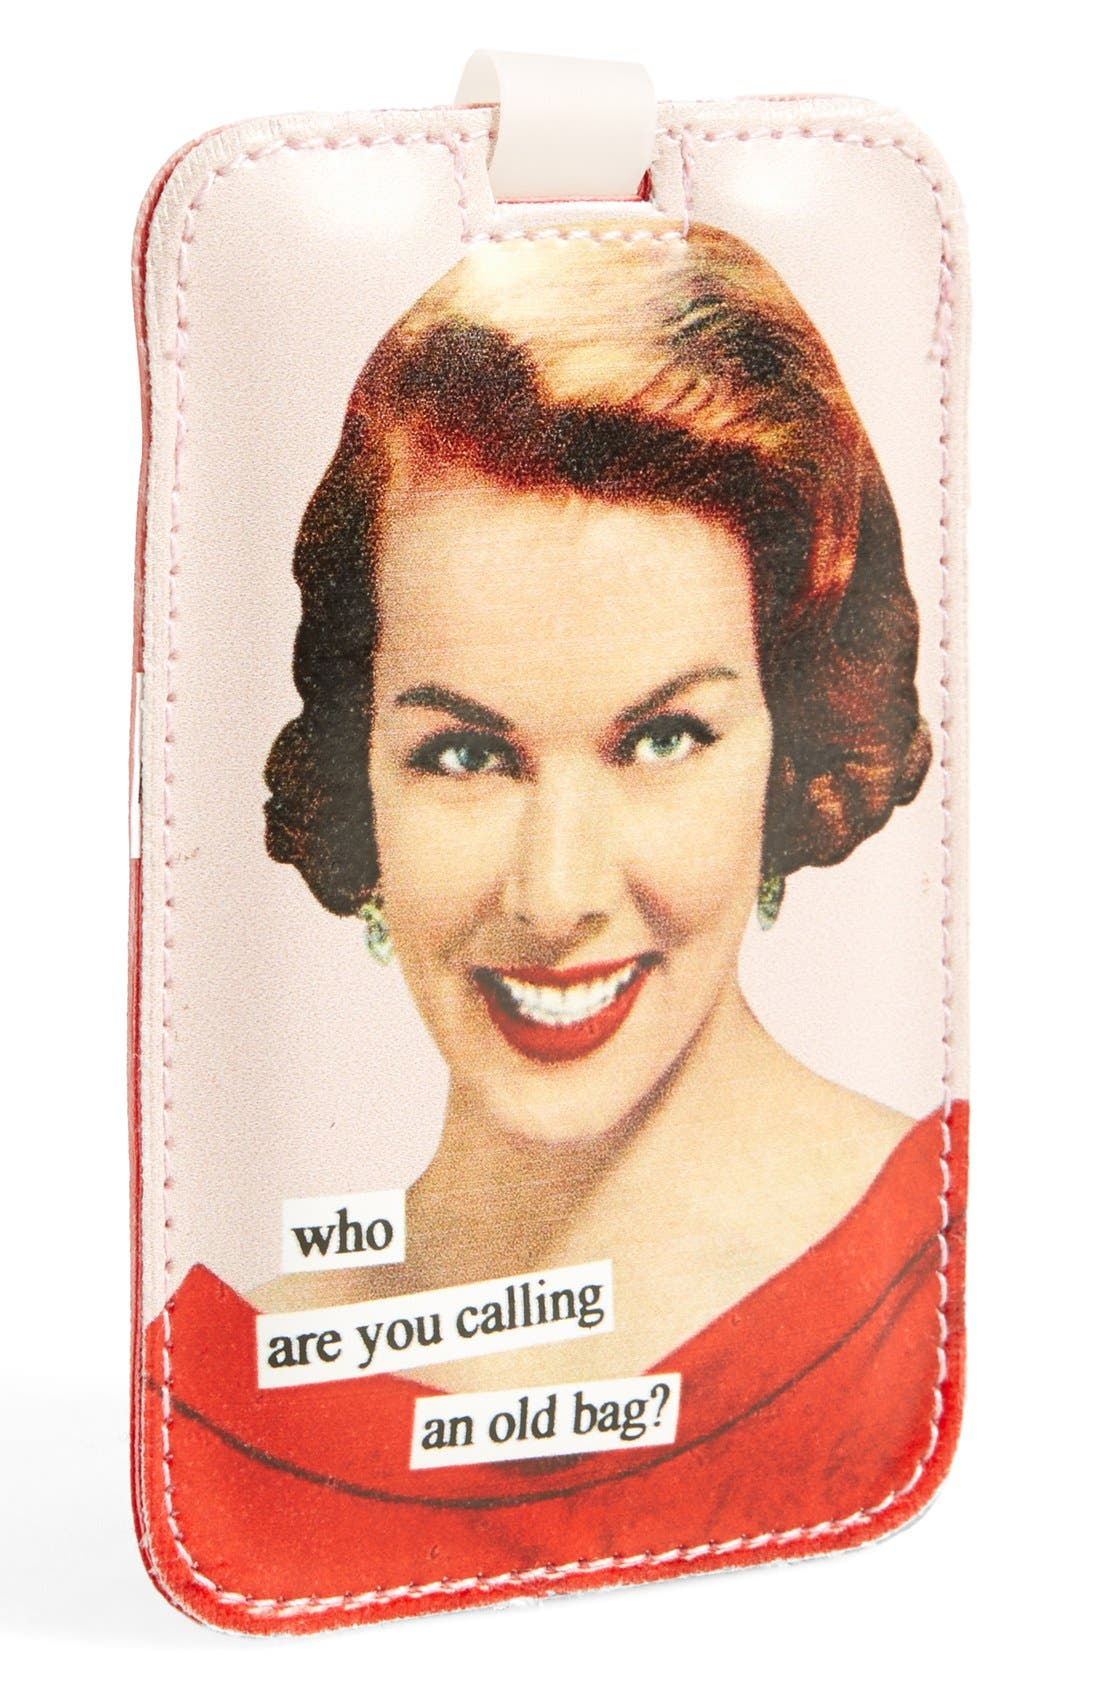 Alternate Image 1 Selected - Anne Taintor 'Who Are You Calling an Old Bag?' Luggage Tag